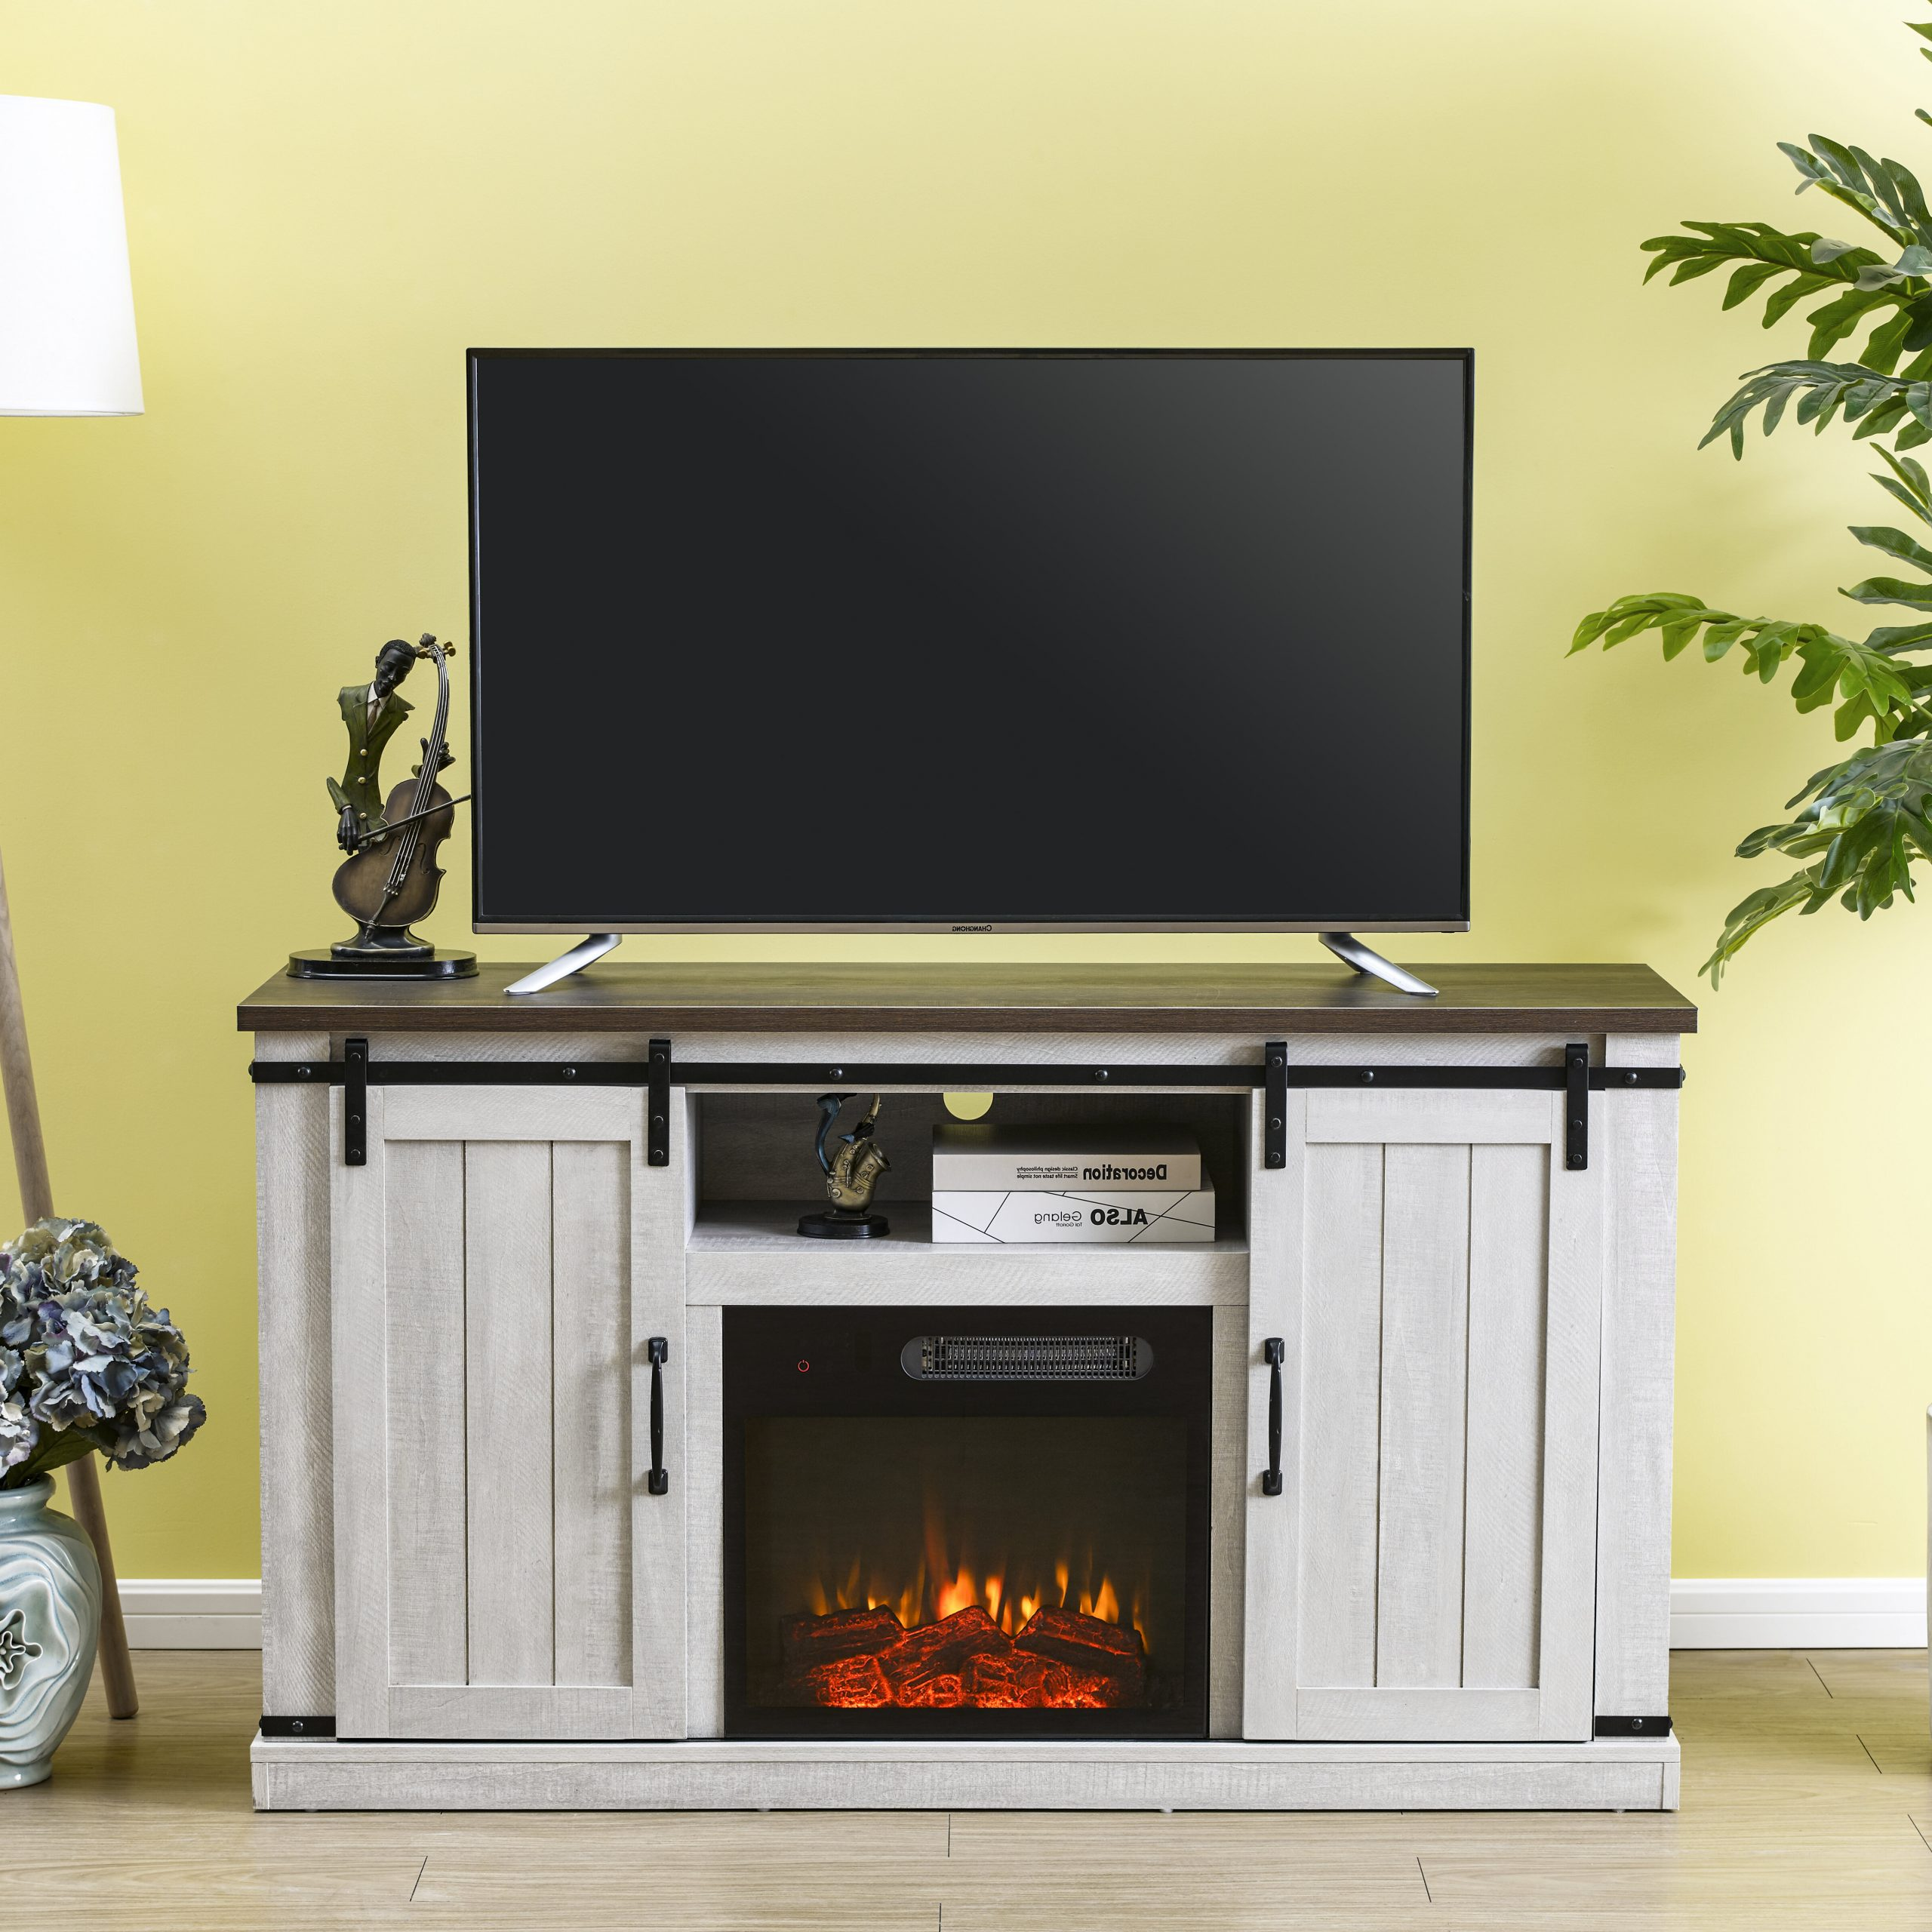 """Canyonlands Tv Stand For Tvs Up To 60"""" With Electricfireplace Included Within Eutropios Tv Stand With Electric Fireplace Included (View 3 of 20)"""